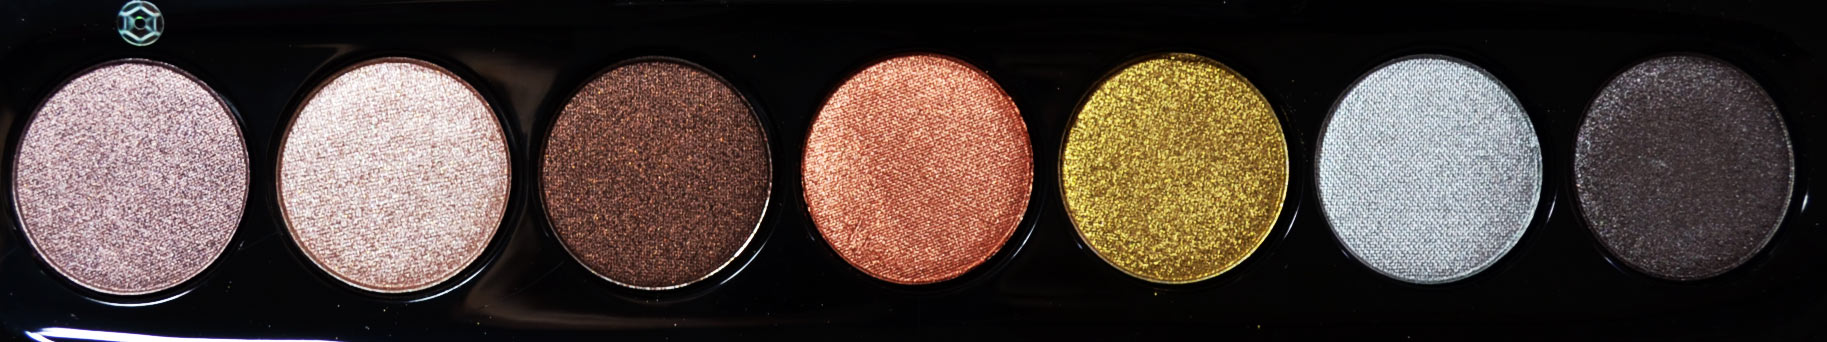 marc-jacobs-beauty-palette-eyeshadow-sombra-04